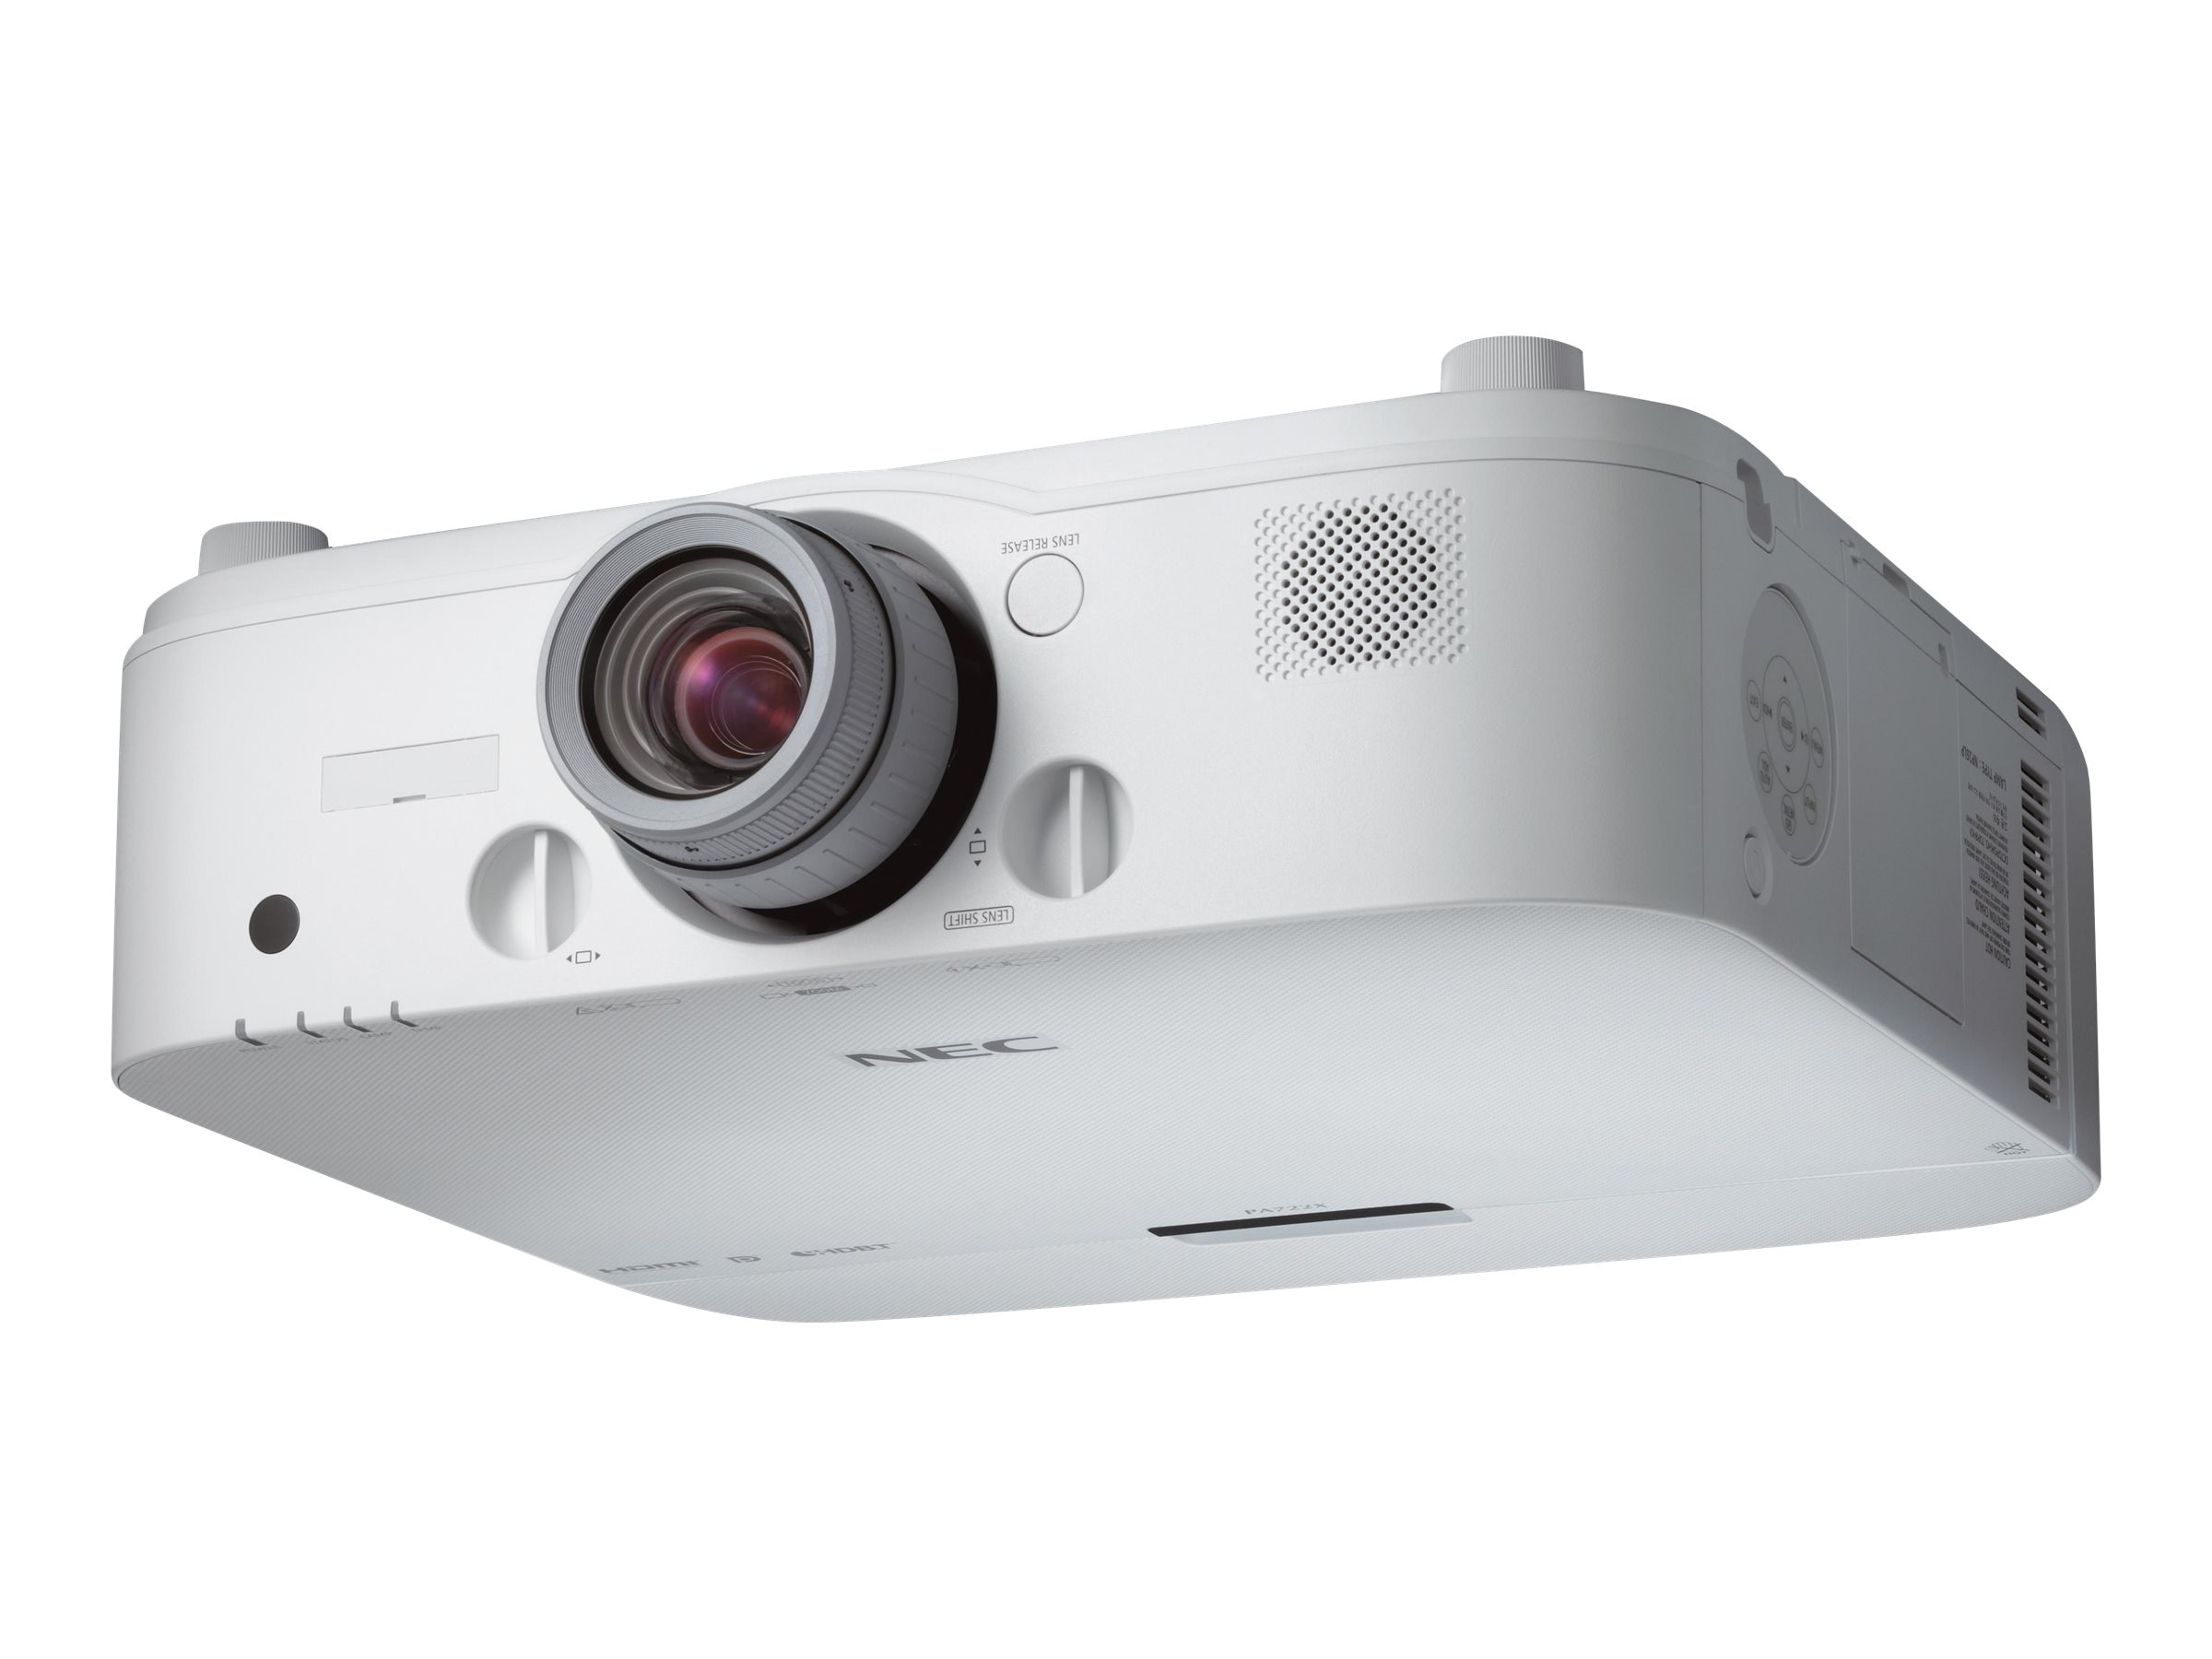 NEC PA521U WXGA LCD Projector, 5200 Lumens, White with 1.5 – 3.0:1 Zoom Lens